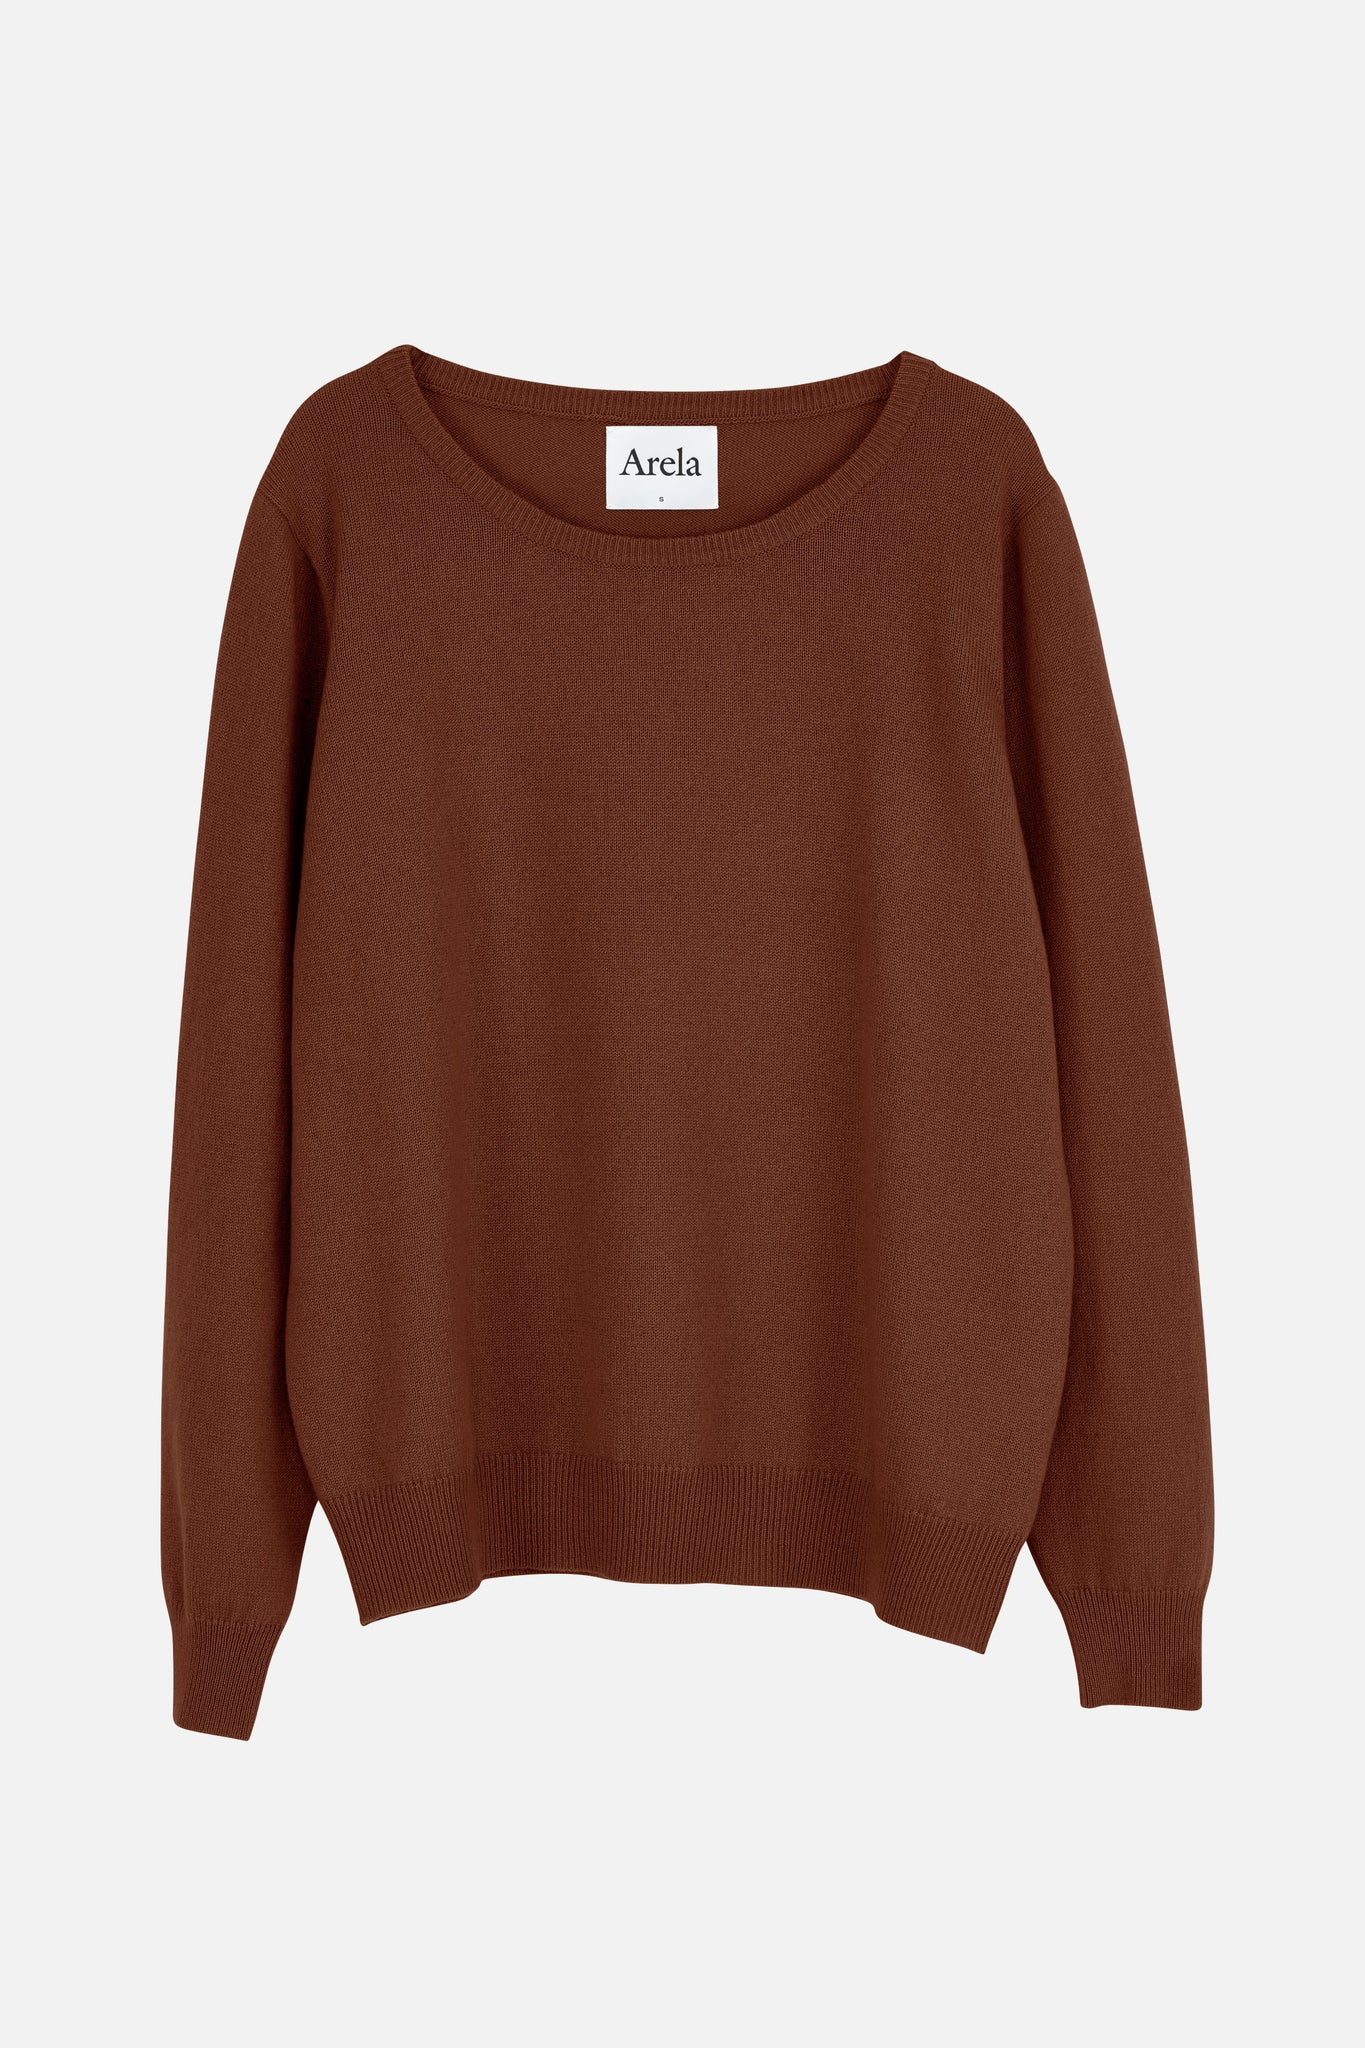 Laine cashmere sweater in brown